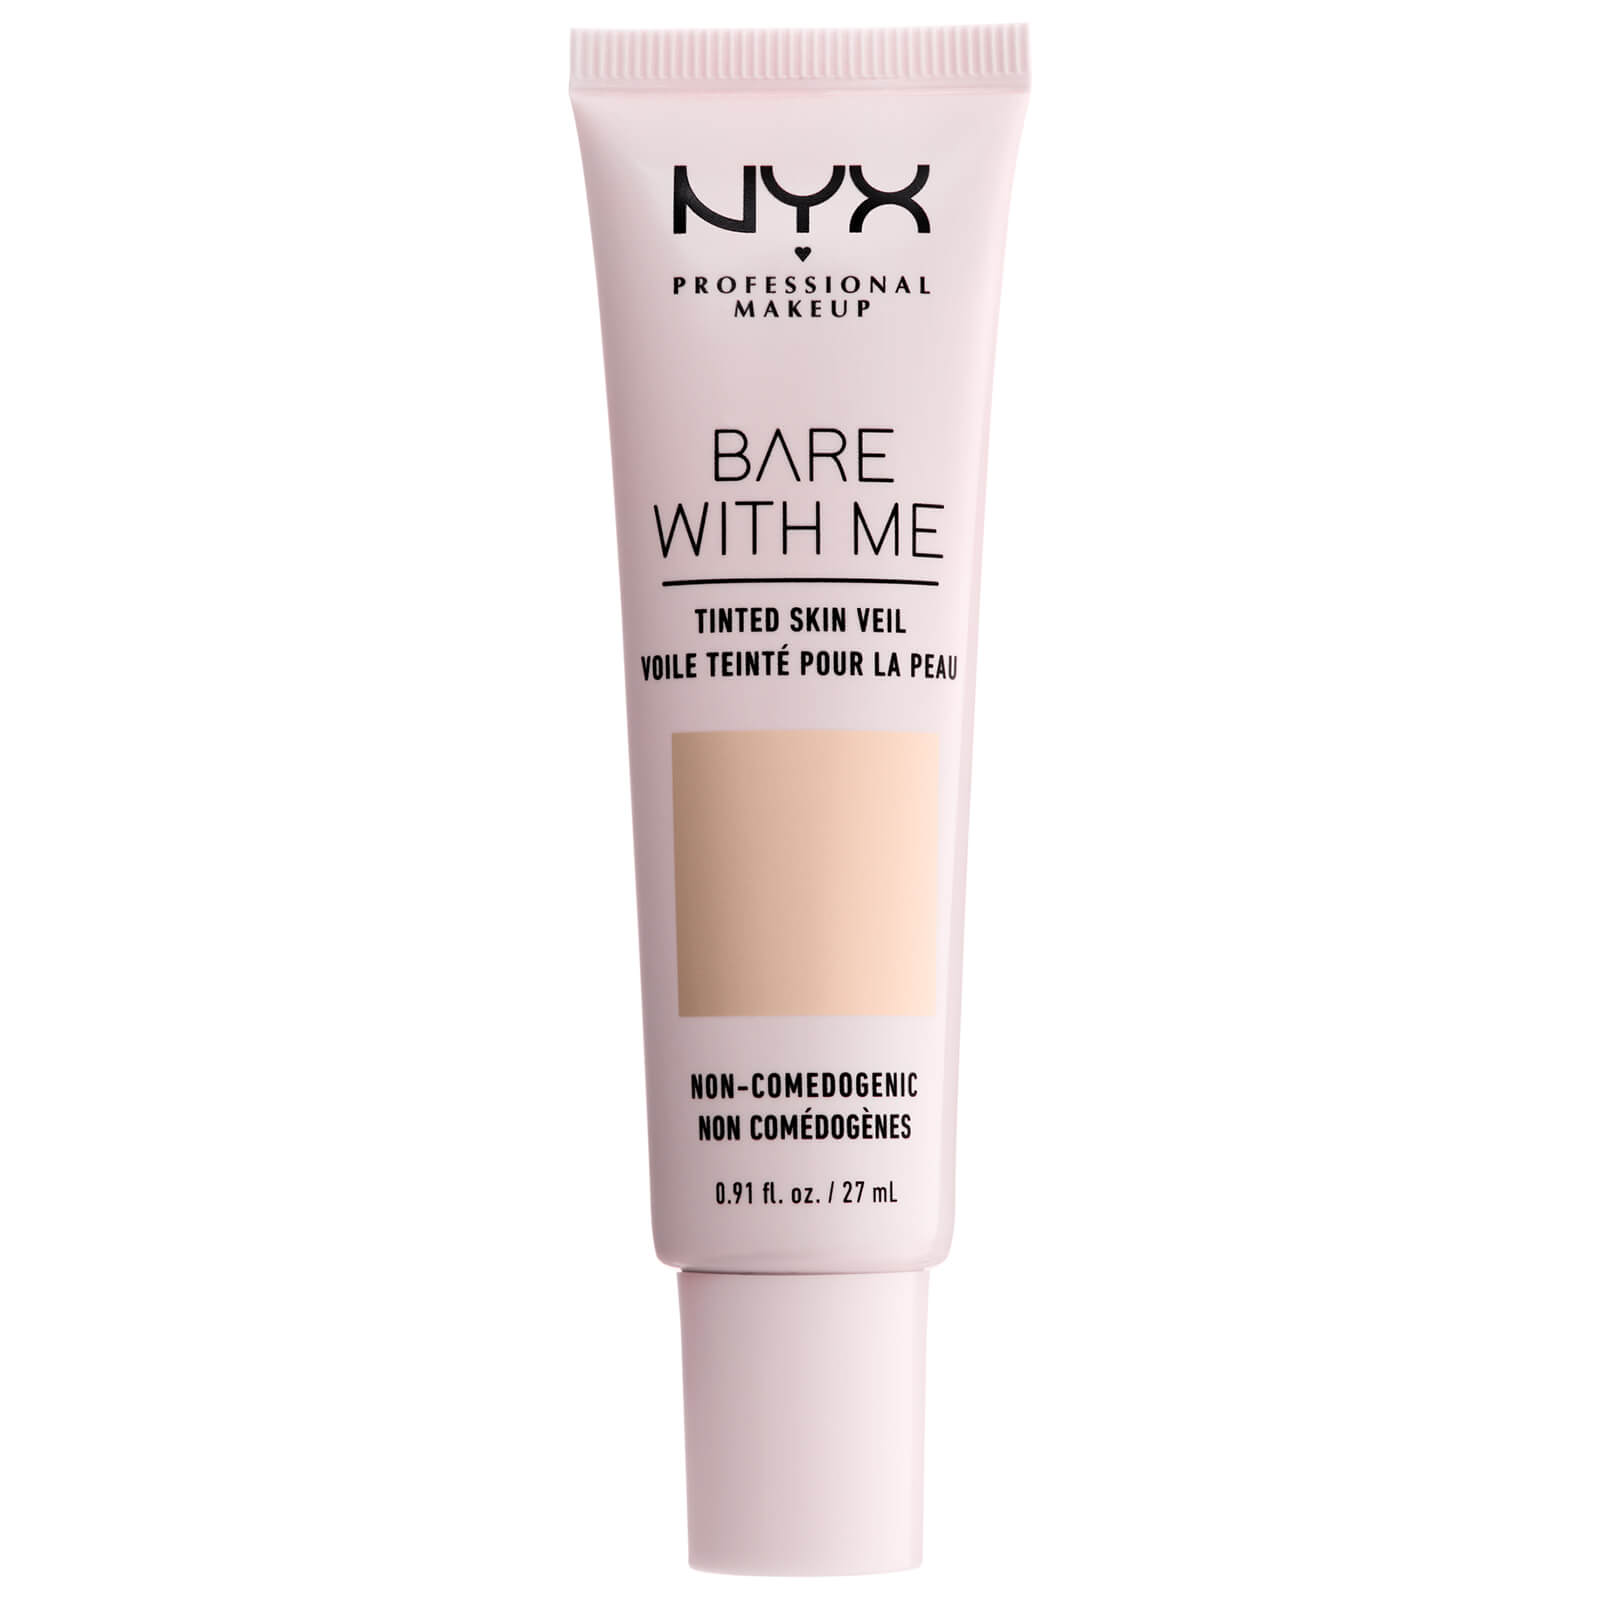 nyx professional makeup bare with me tinted skin veil bb cream 27ml (various shades) - pale light